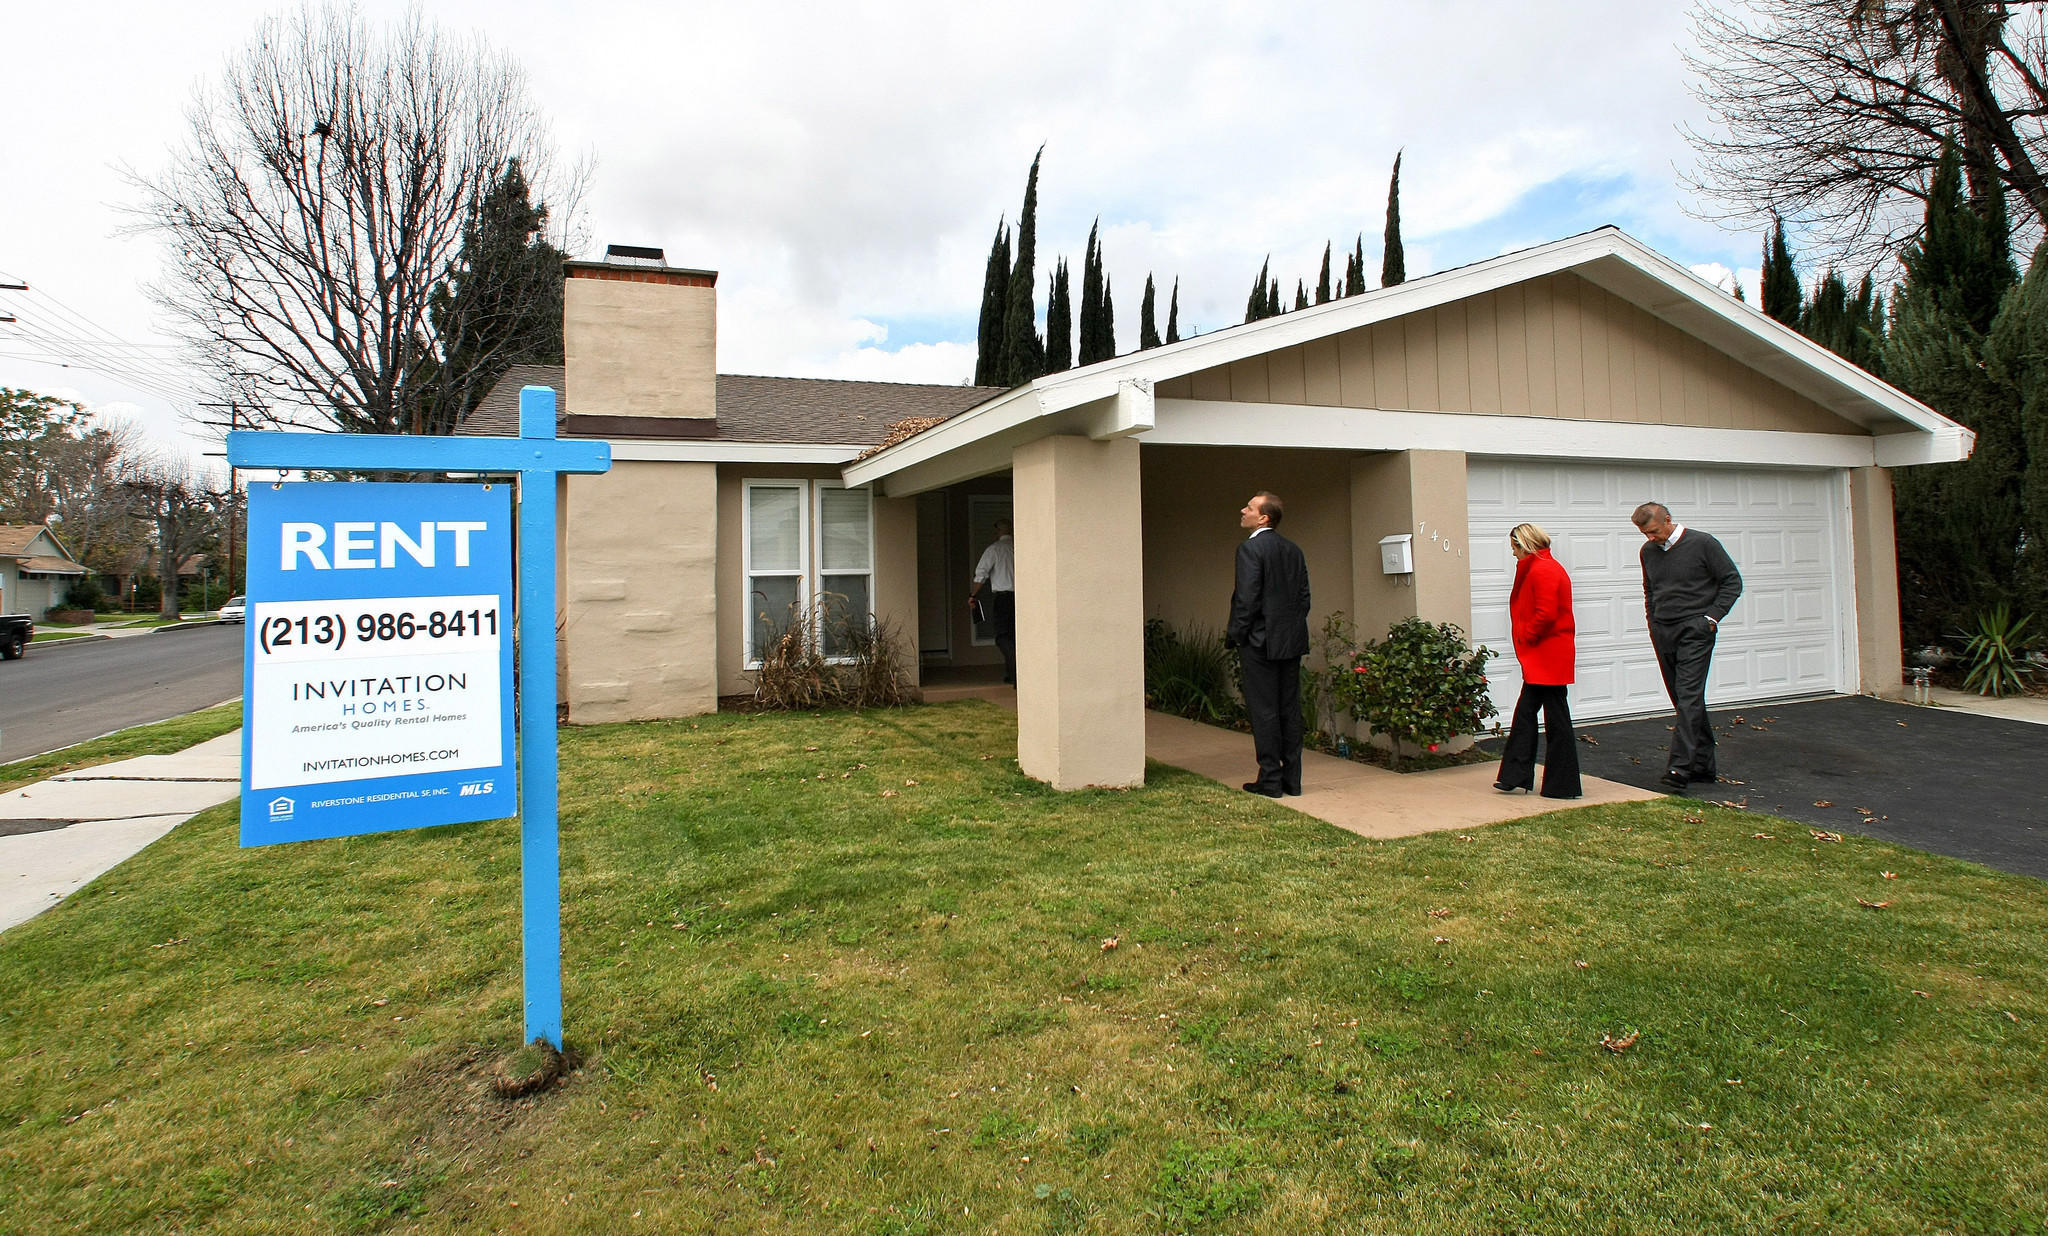 Officials From Invitation Homes Tour One Of Its Homes In Canoga Park.